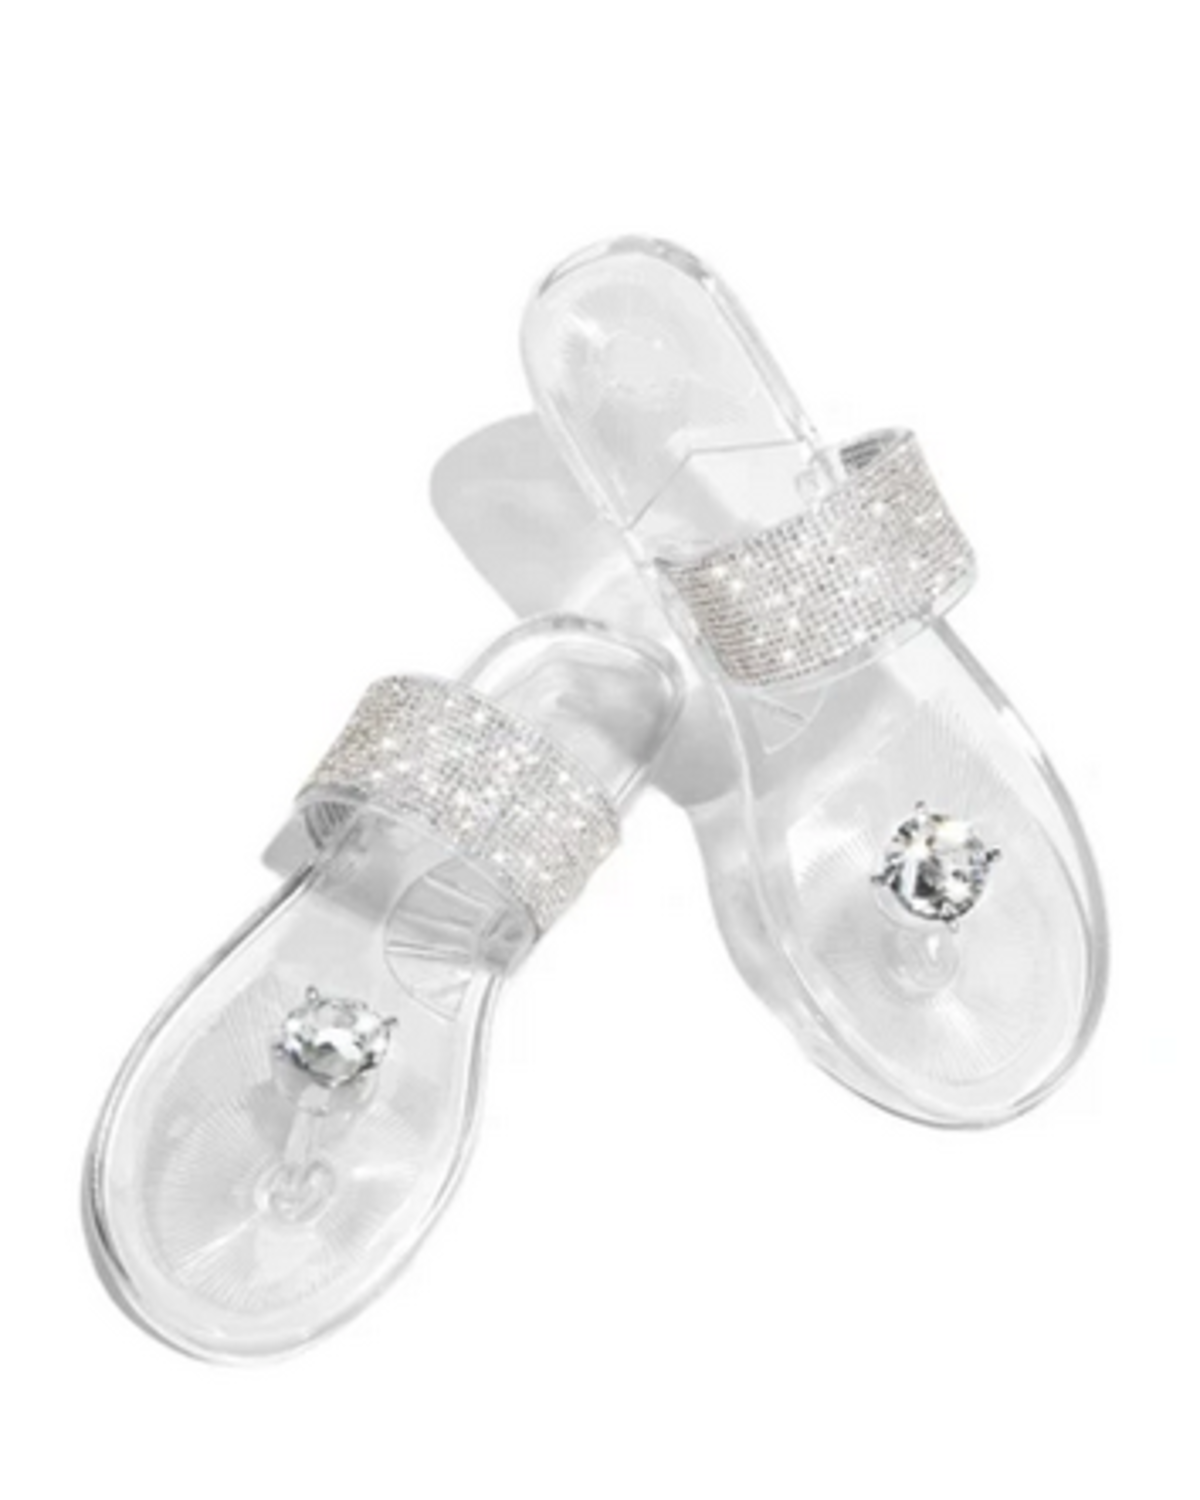 Such A Stud Sandals Clear